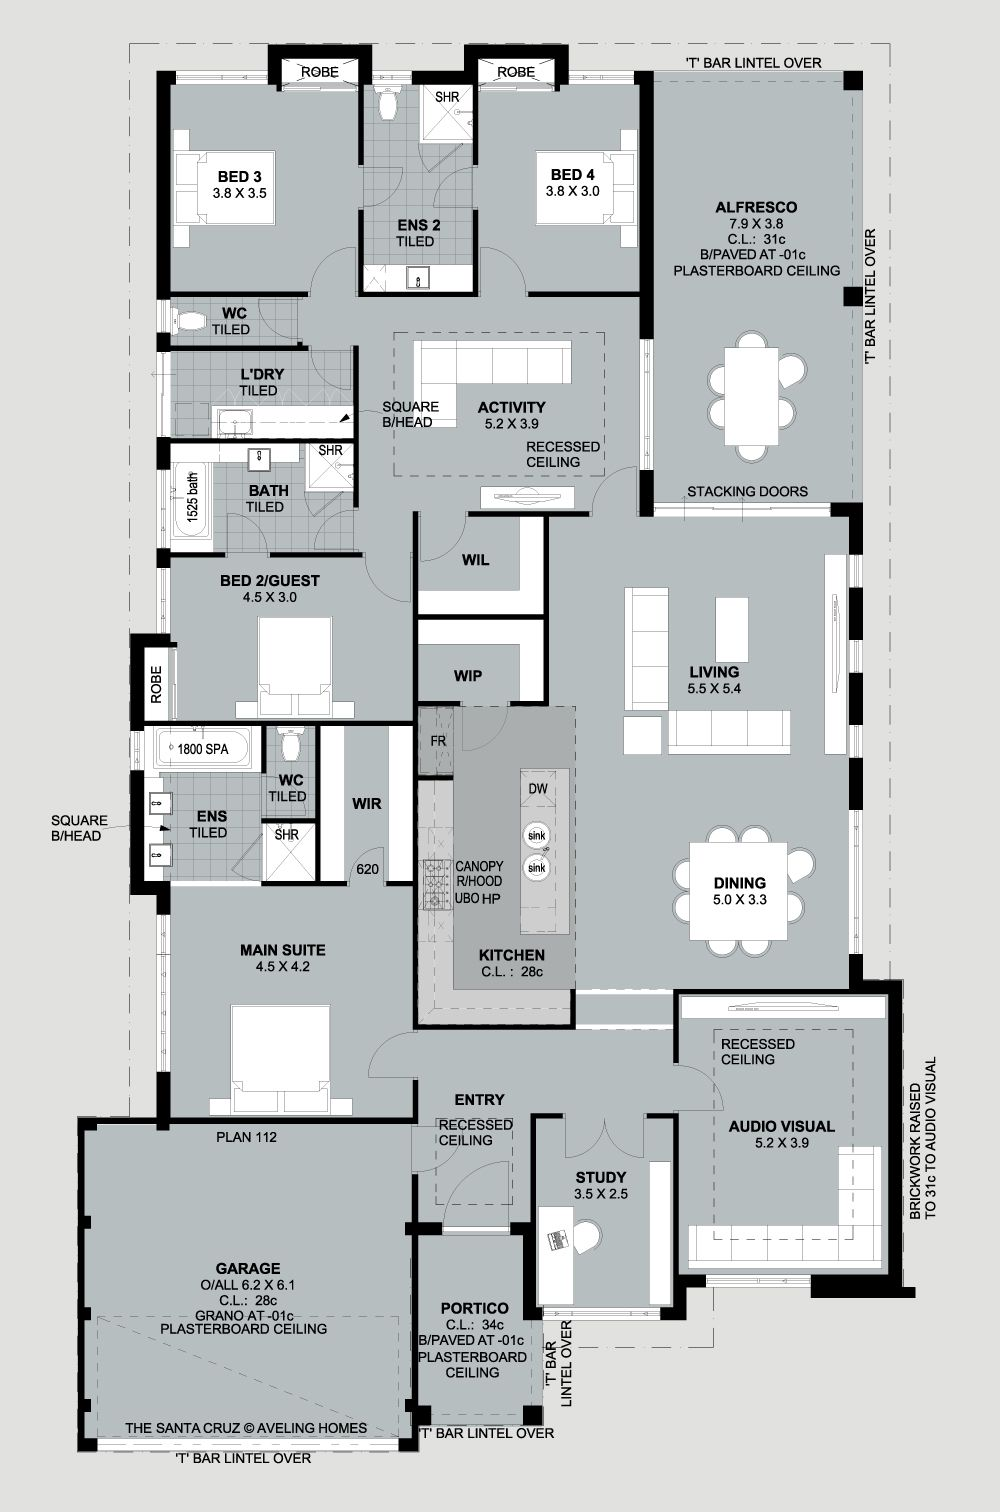 Good Layout 2 Ensuite Brooms 3 4 Share Bathroom Master Not In The Best Position 0112 Santa Cruz Family House Plans New House Plans House Blueprints